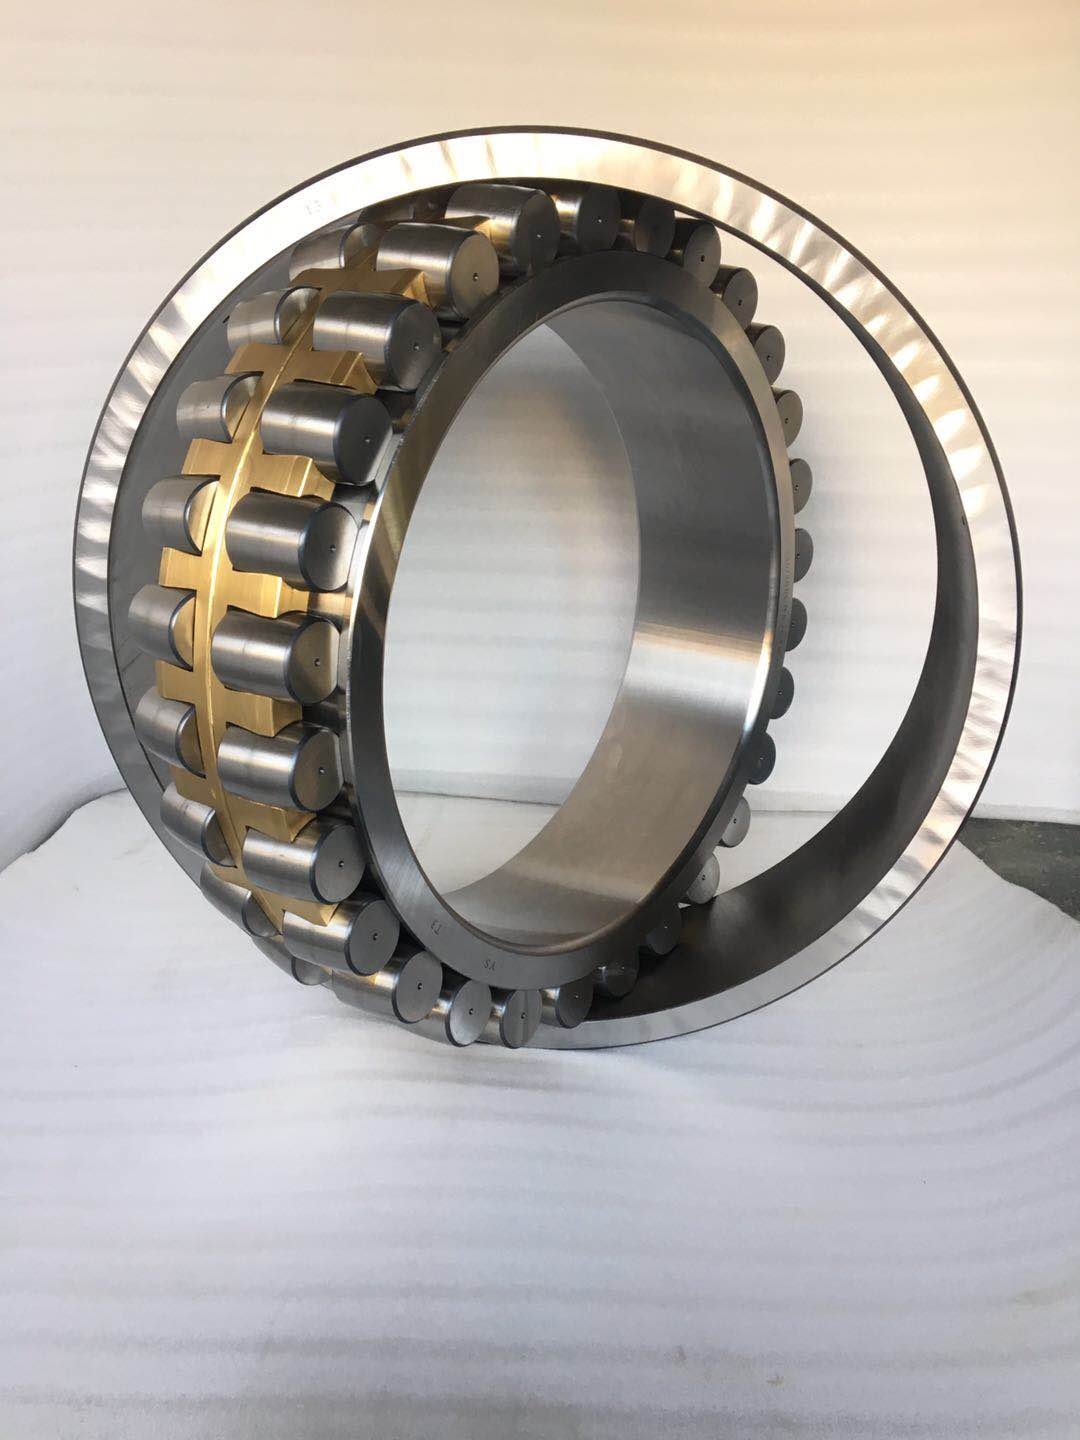 Famous brand Simon Lina 24072CC/W33 Spherical Roller Bearing 24072CA/W33 for Rolling Mill Mining Machines 24072